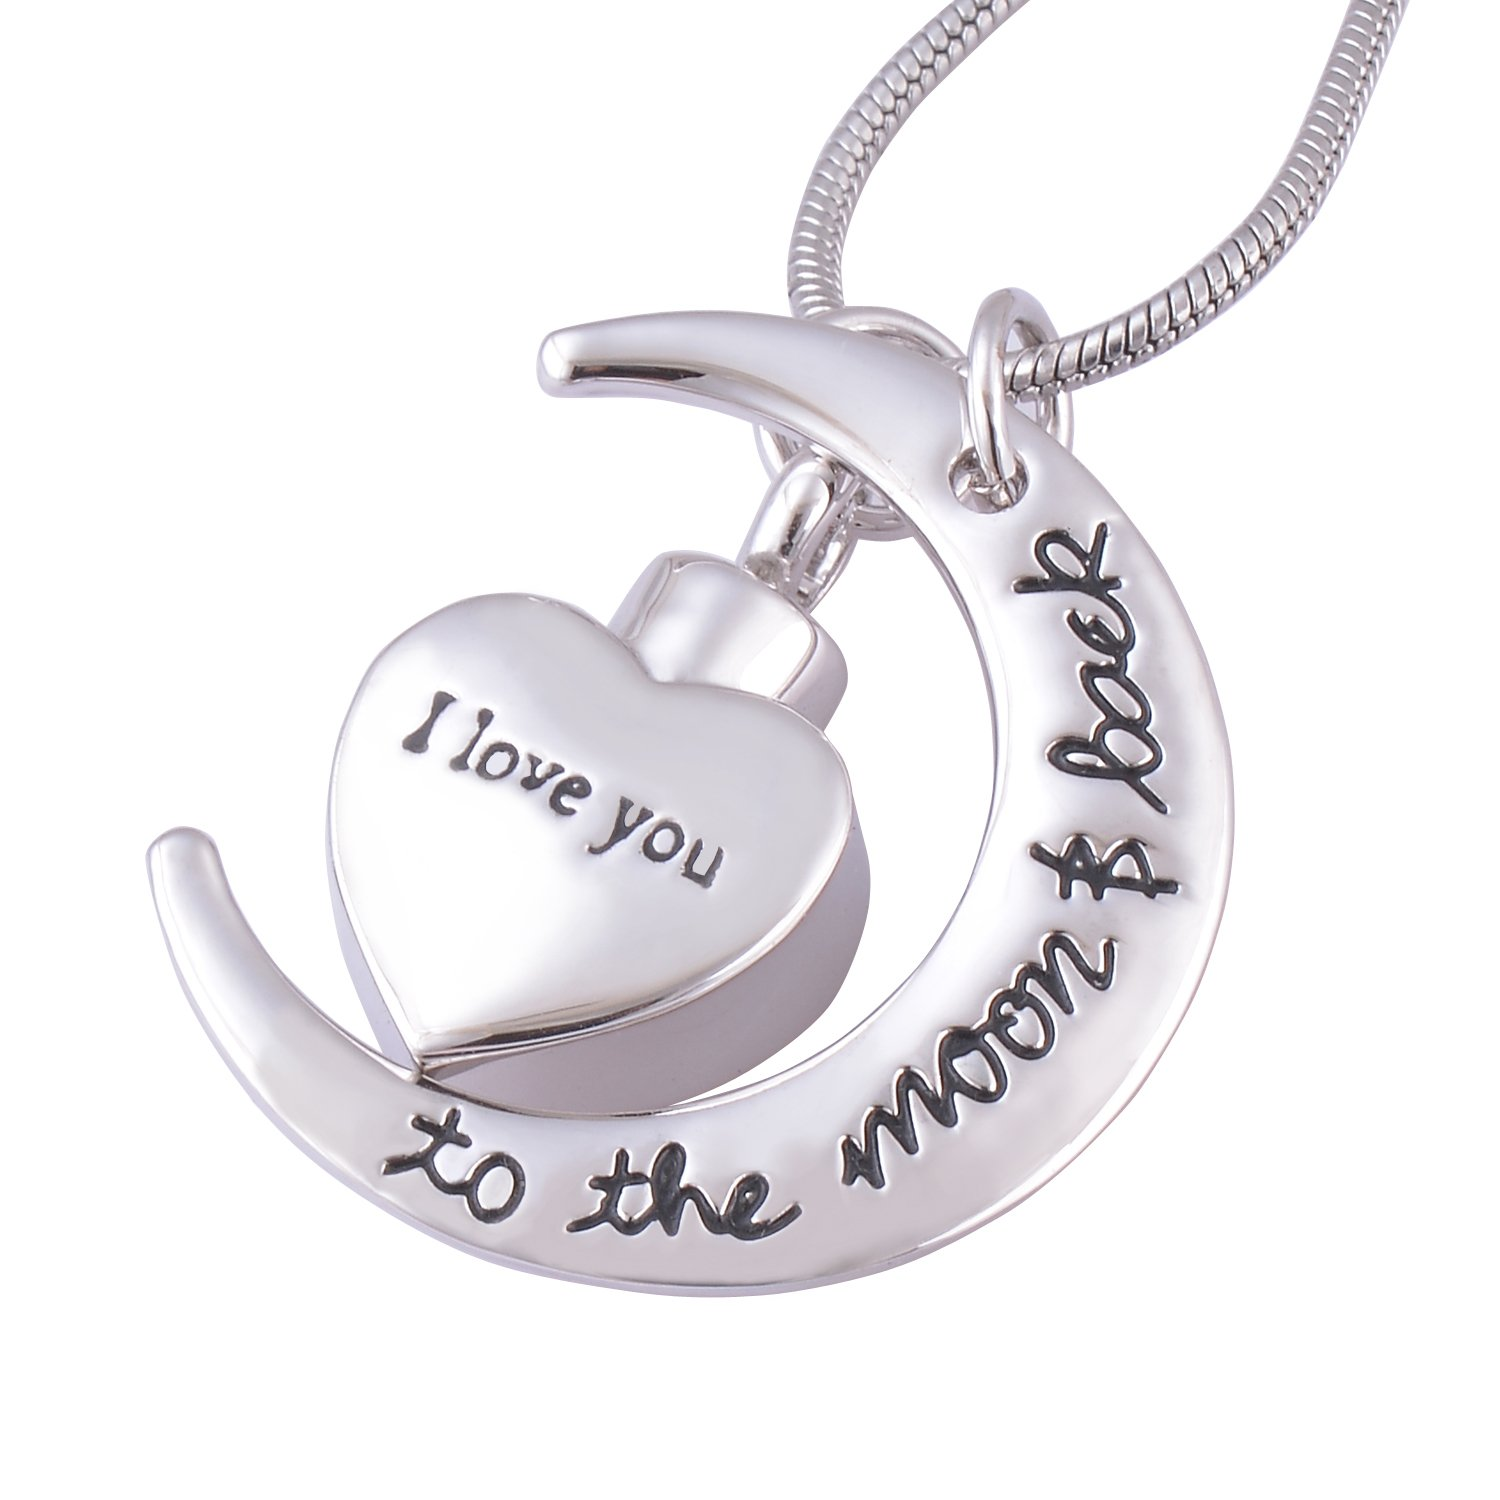 fish cremation pendant design memorial image necklace hook product urn products